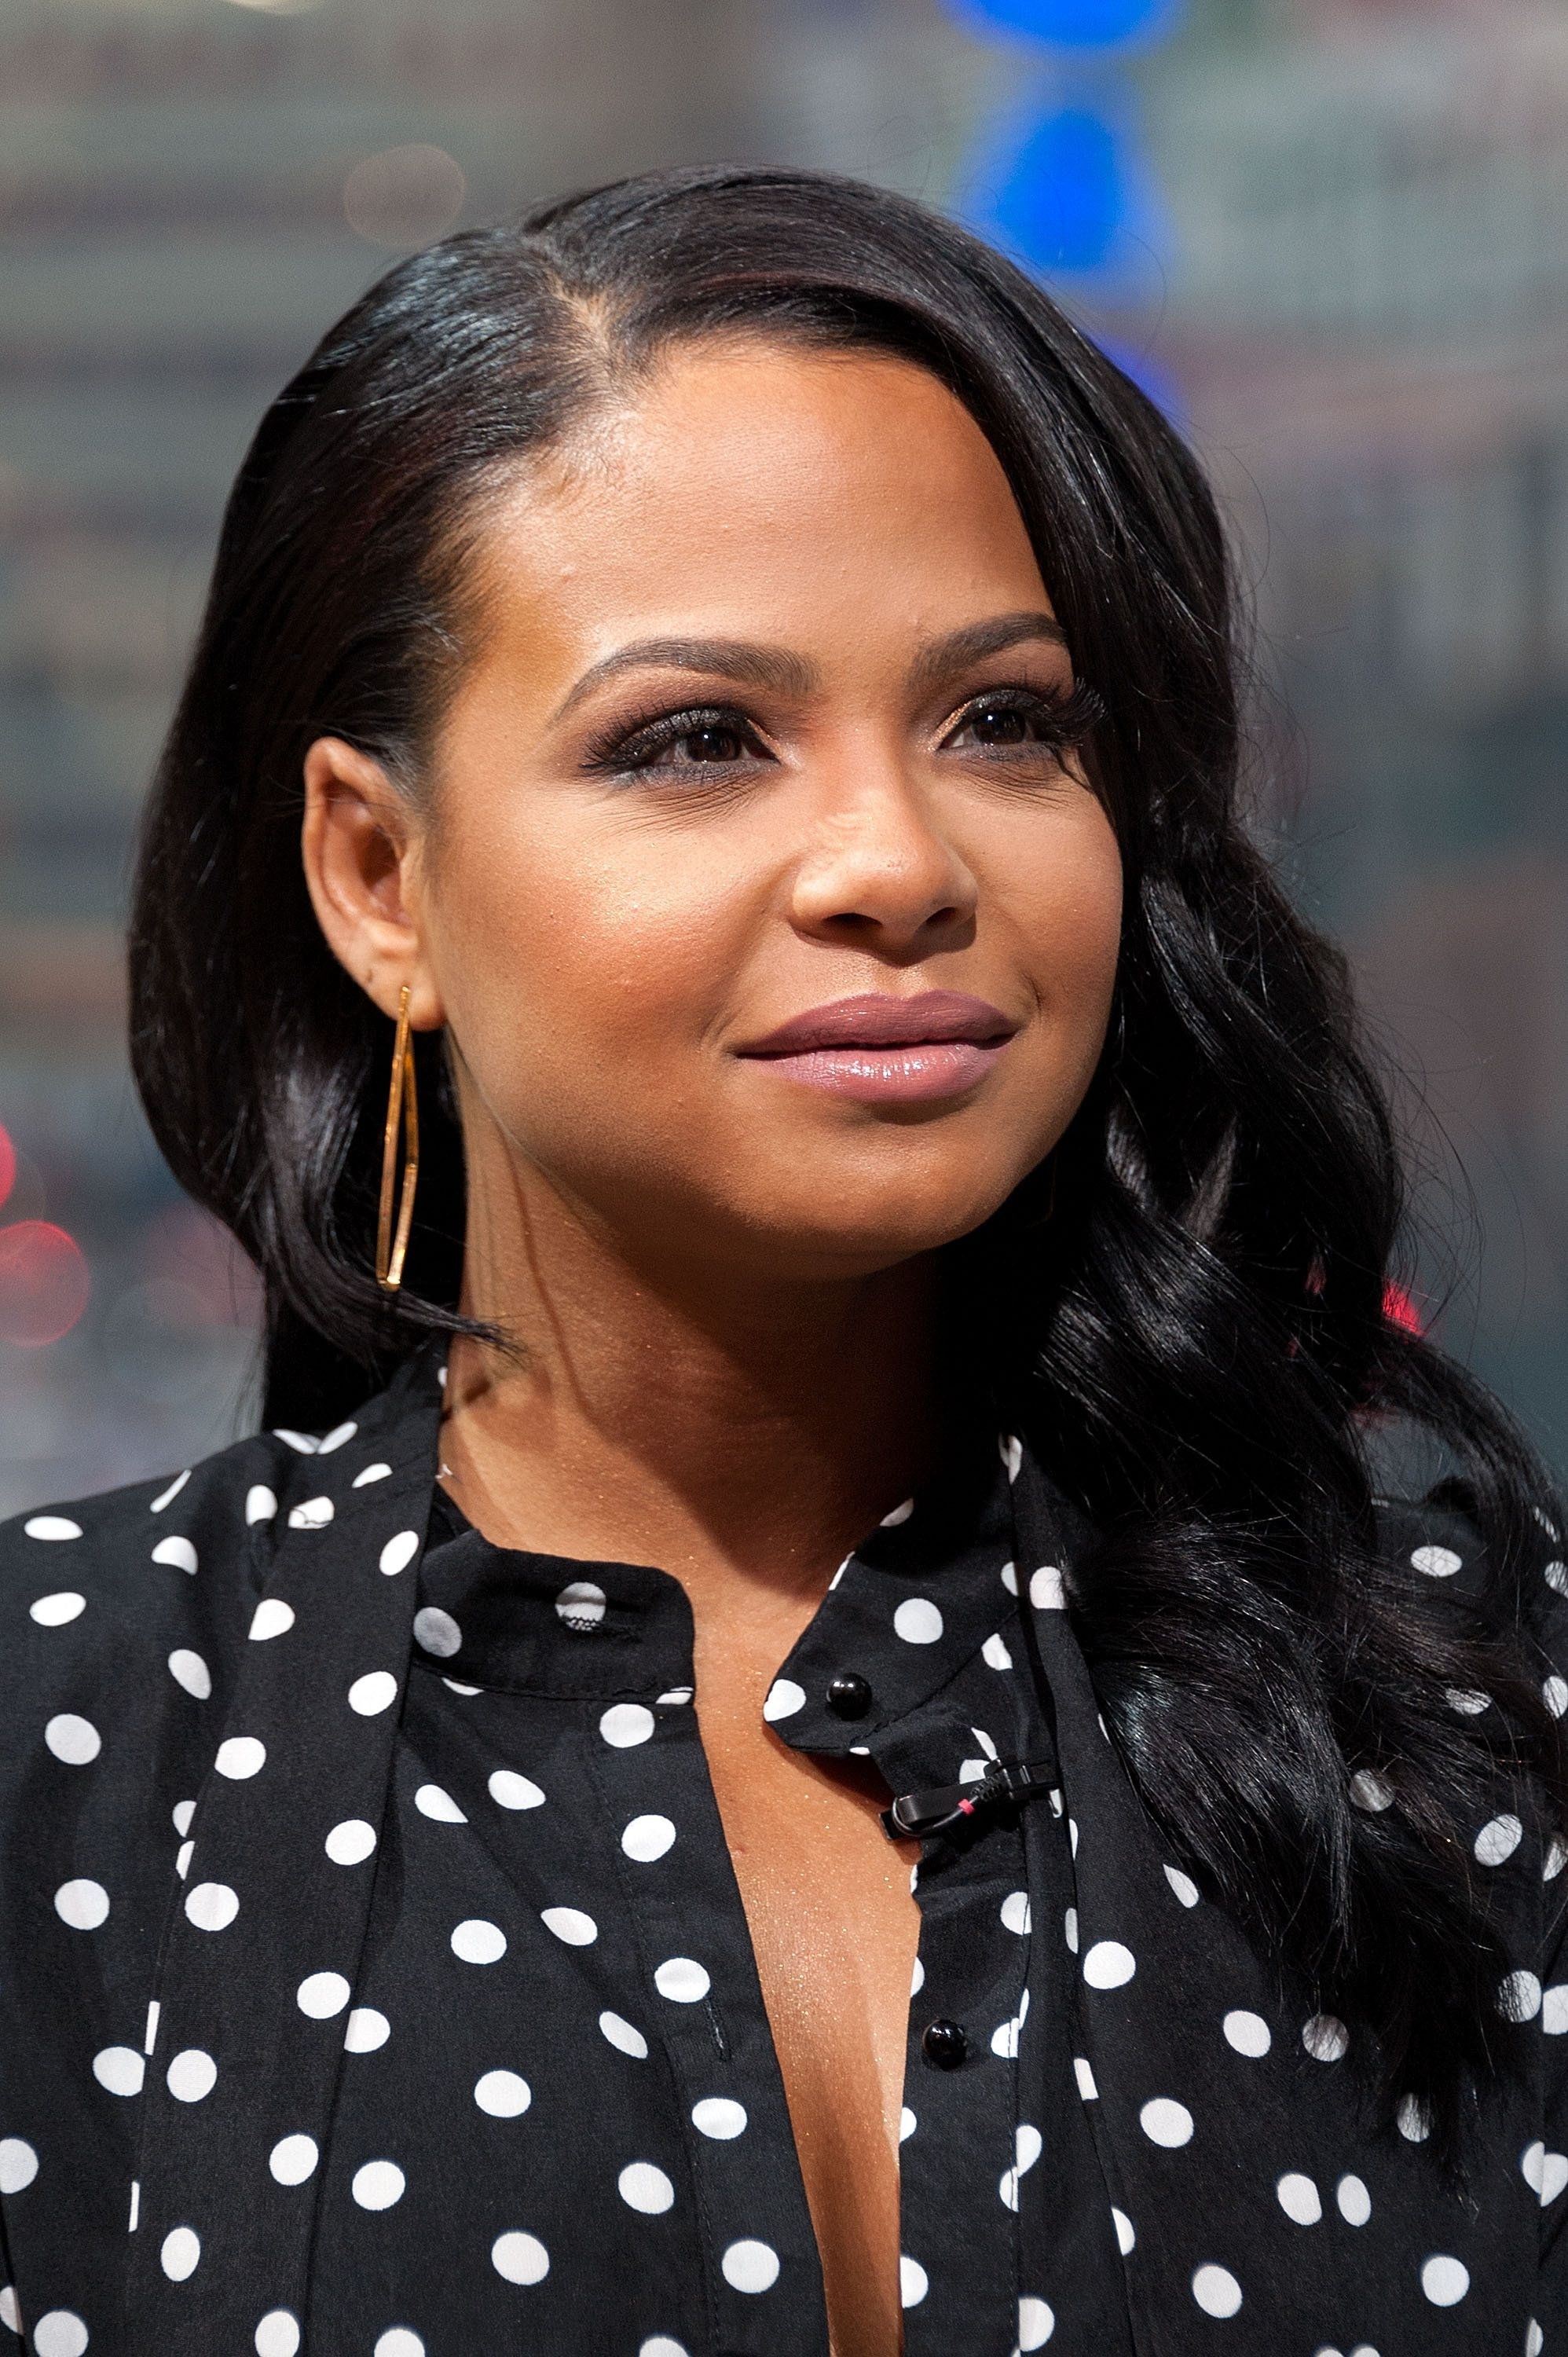 NEW YORK, NY - DECEMBER 11:  Christina Milian visits 'Extra' at their New York studios at H&M in Times Square on December 11, 2015 in New York City.  (Photo by D Dipasupil/Getty Images for Extra)